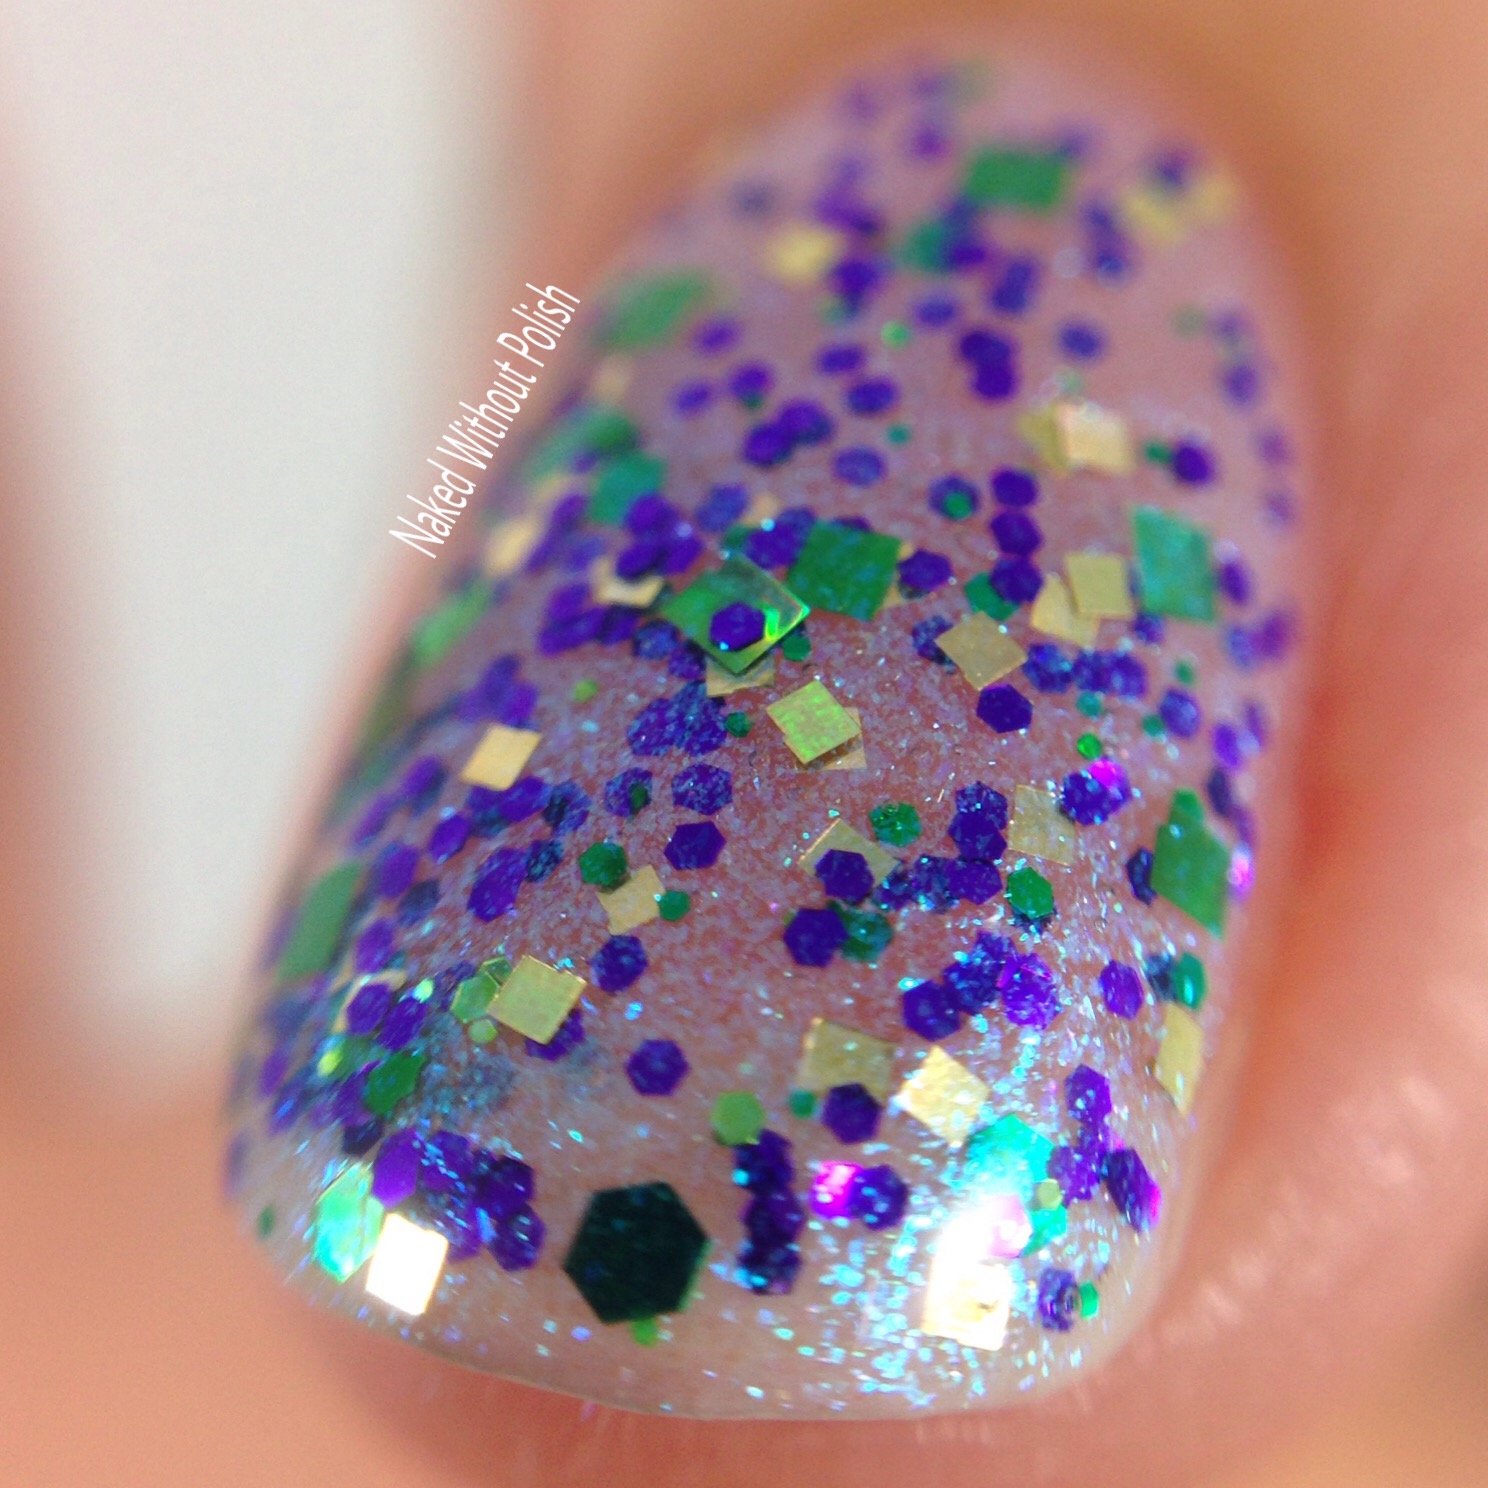 Turtle-Tootsie-Polishes-Elvish-6